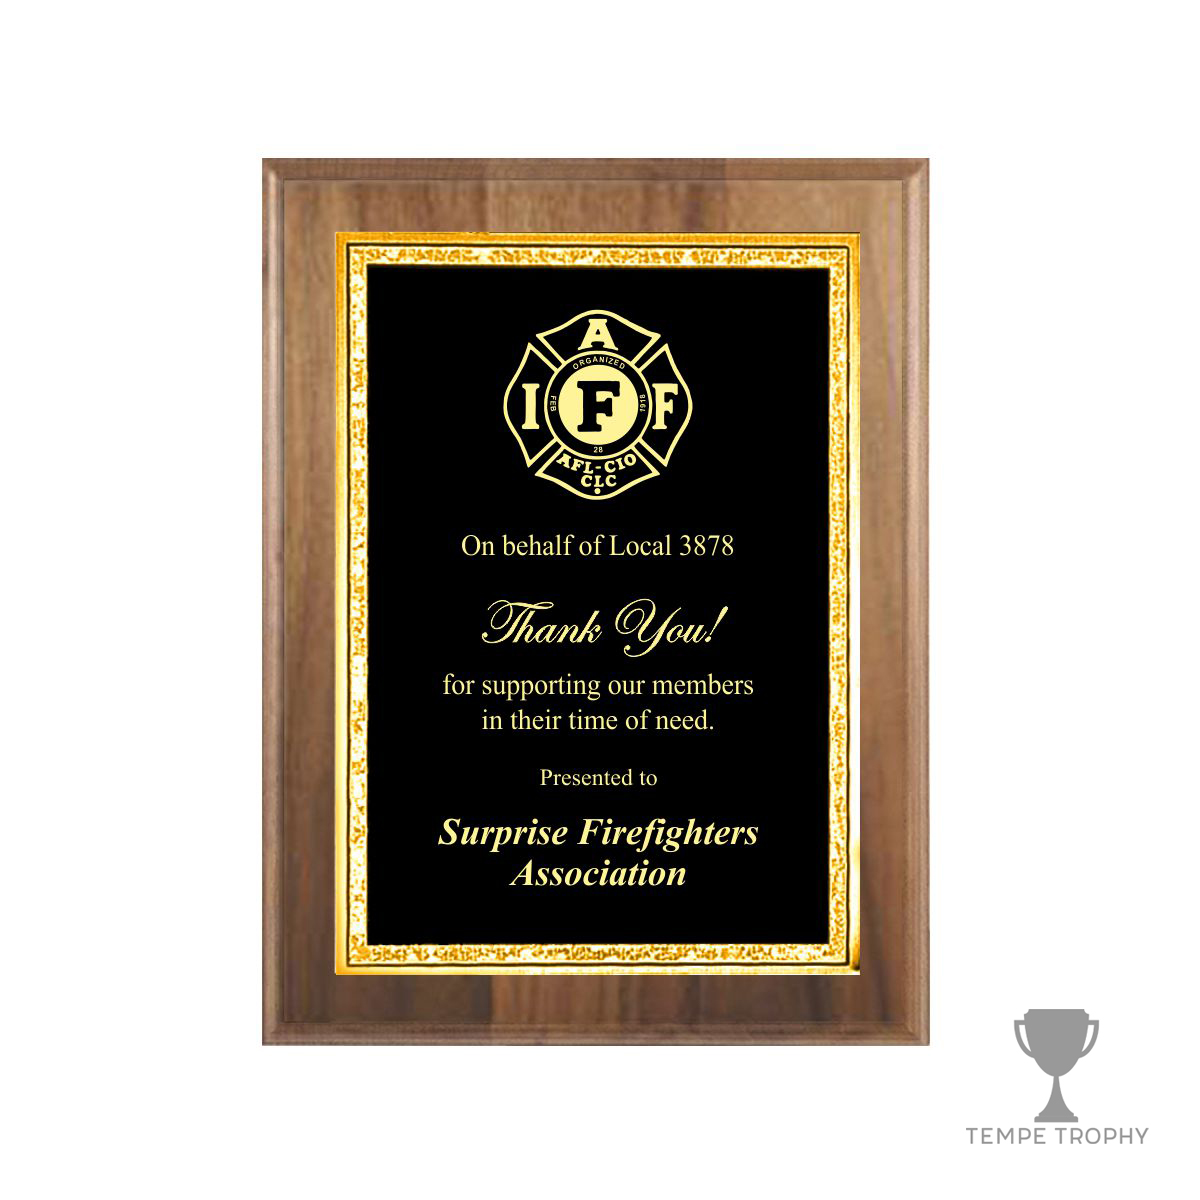 Classic Brown Plaque with Gold Decorative Plate  sc 1 st  Tempe Trophy & Classic Brown Walnut Plaque with Gold Decorative Plate | Tempe Trophy